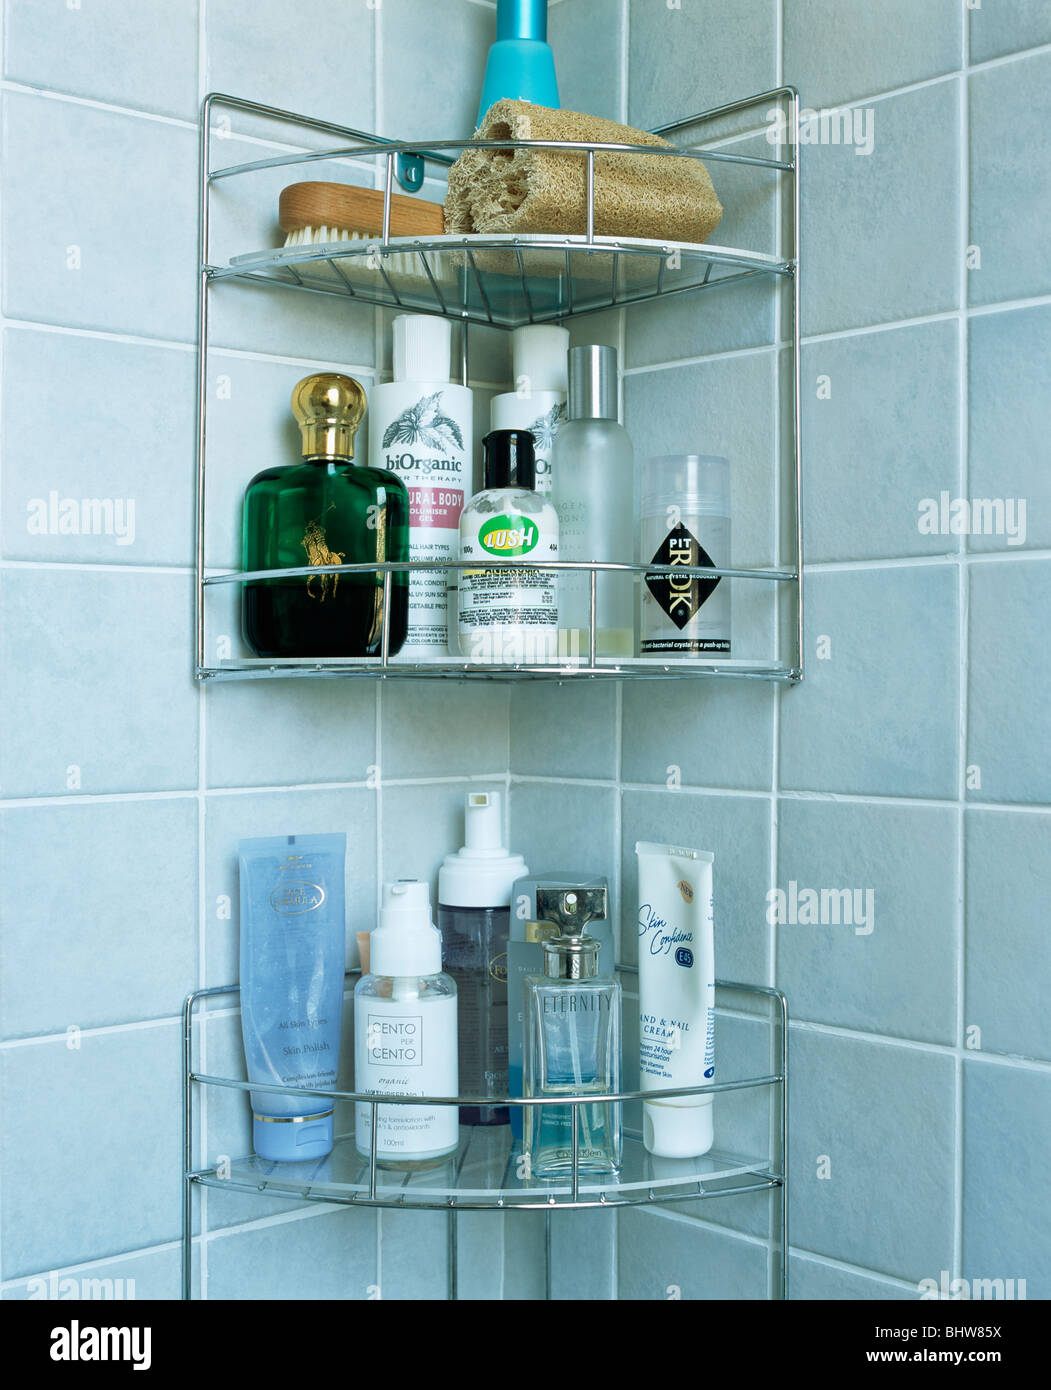 Corner Shelving Stock Photos & Corner Shelving Stock Images - Alamy